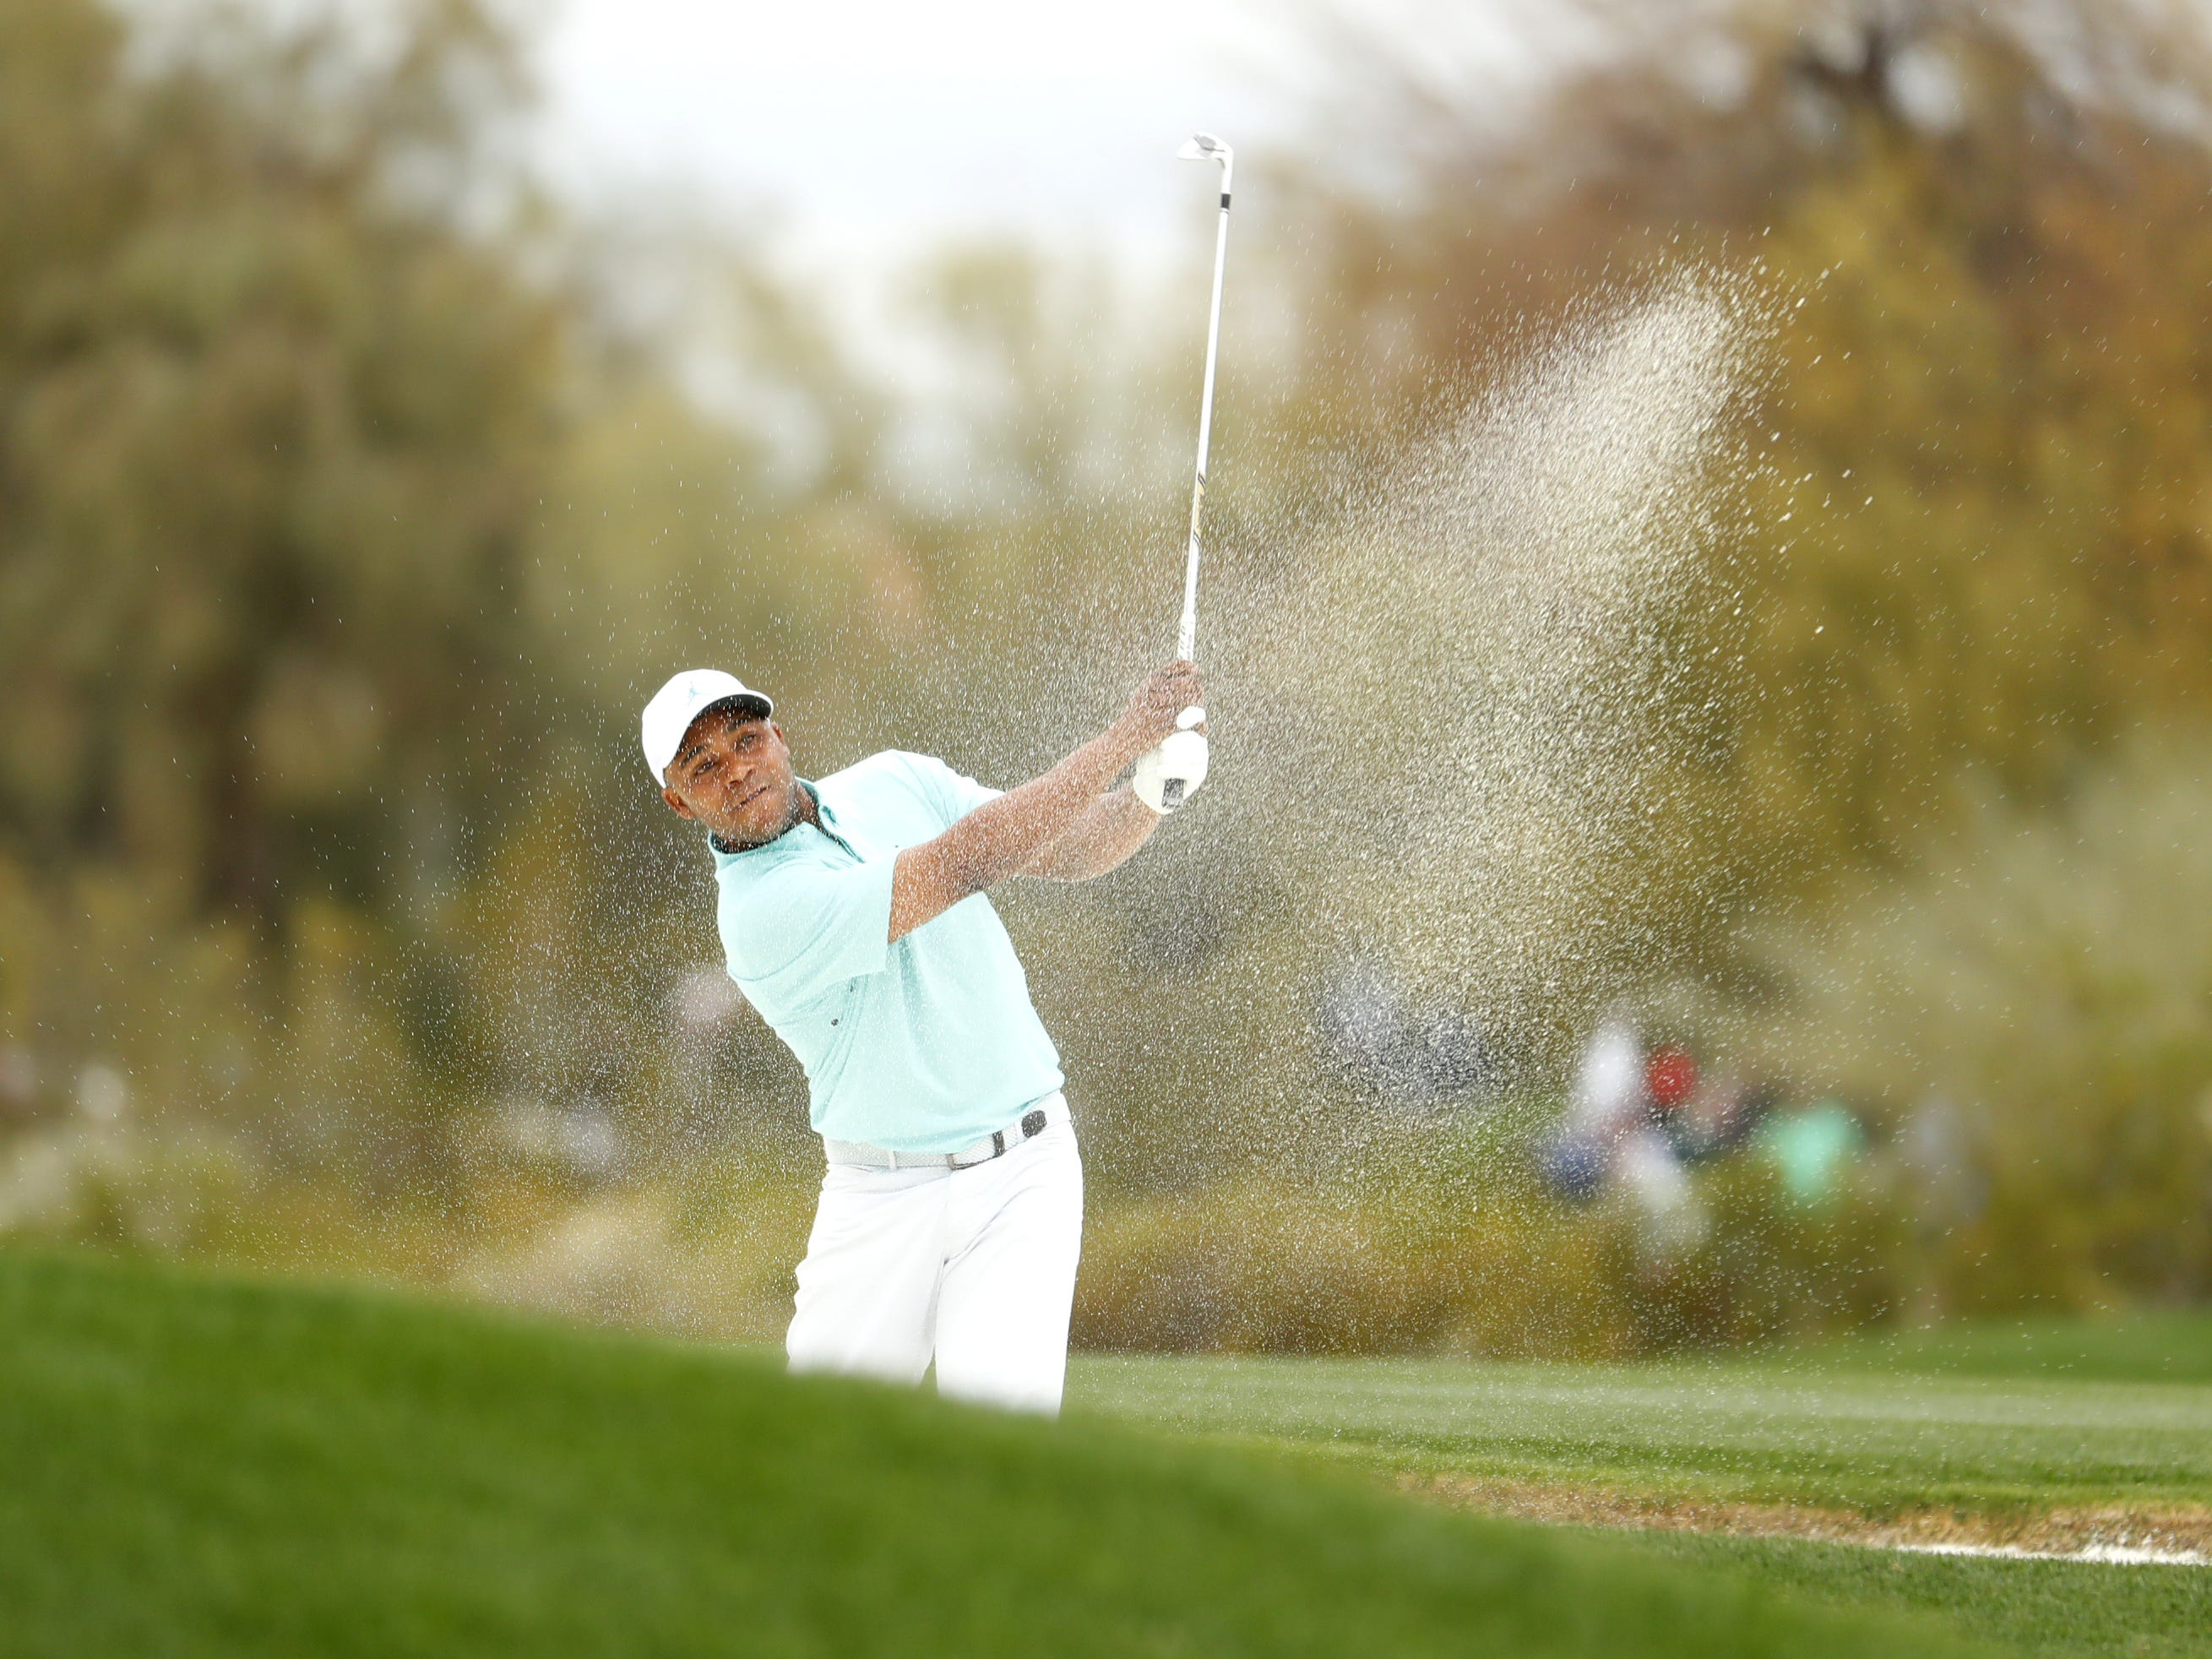 Harold Varner III hits from the fairway bunker on the 2nd hole during the third round of the Waste Management Phoenix Open at TPC Scottsdale in Scottsdale, Ariz. on February 2, 2019.